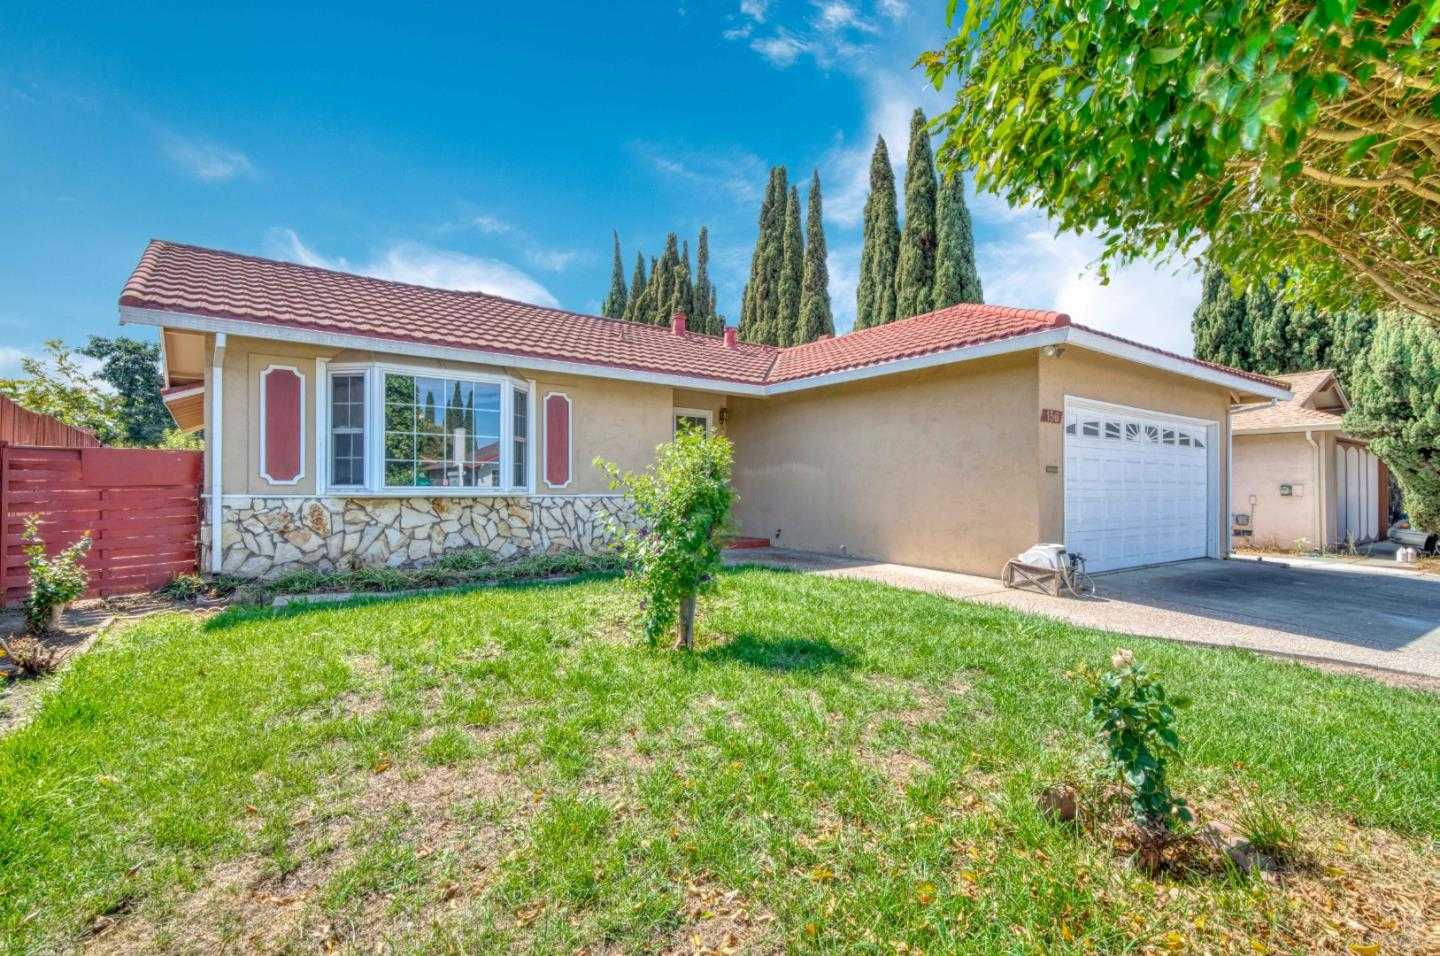 $1,125,000 - 3Br/2Ba -  for Sale in Milpitas